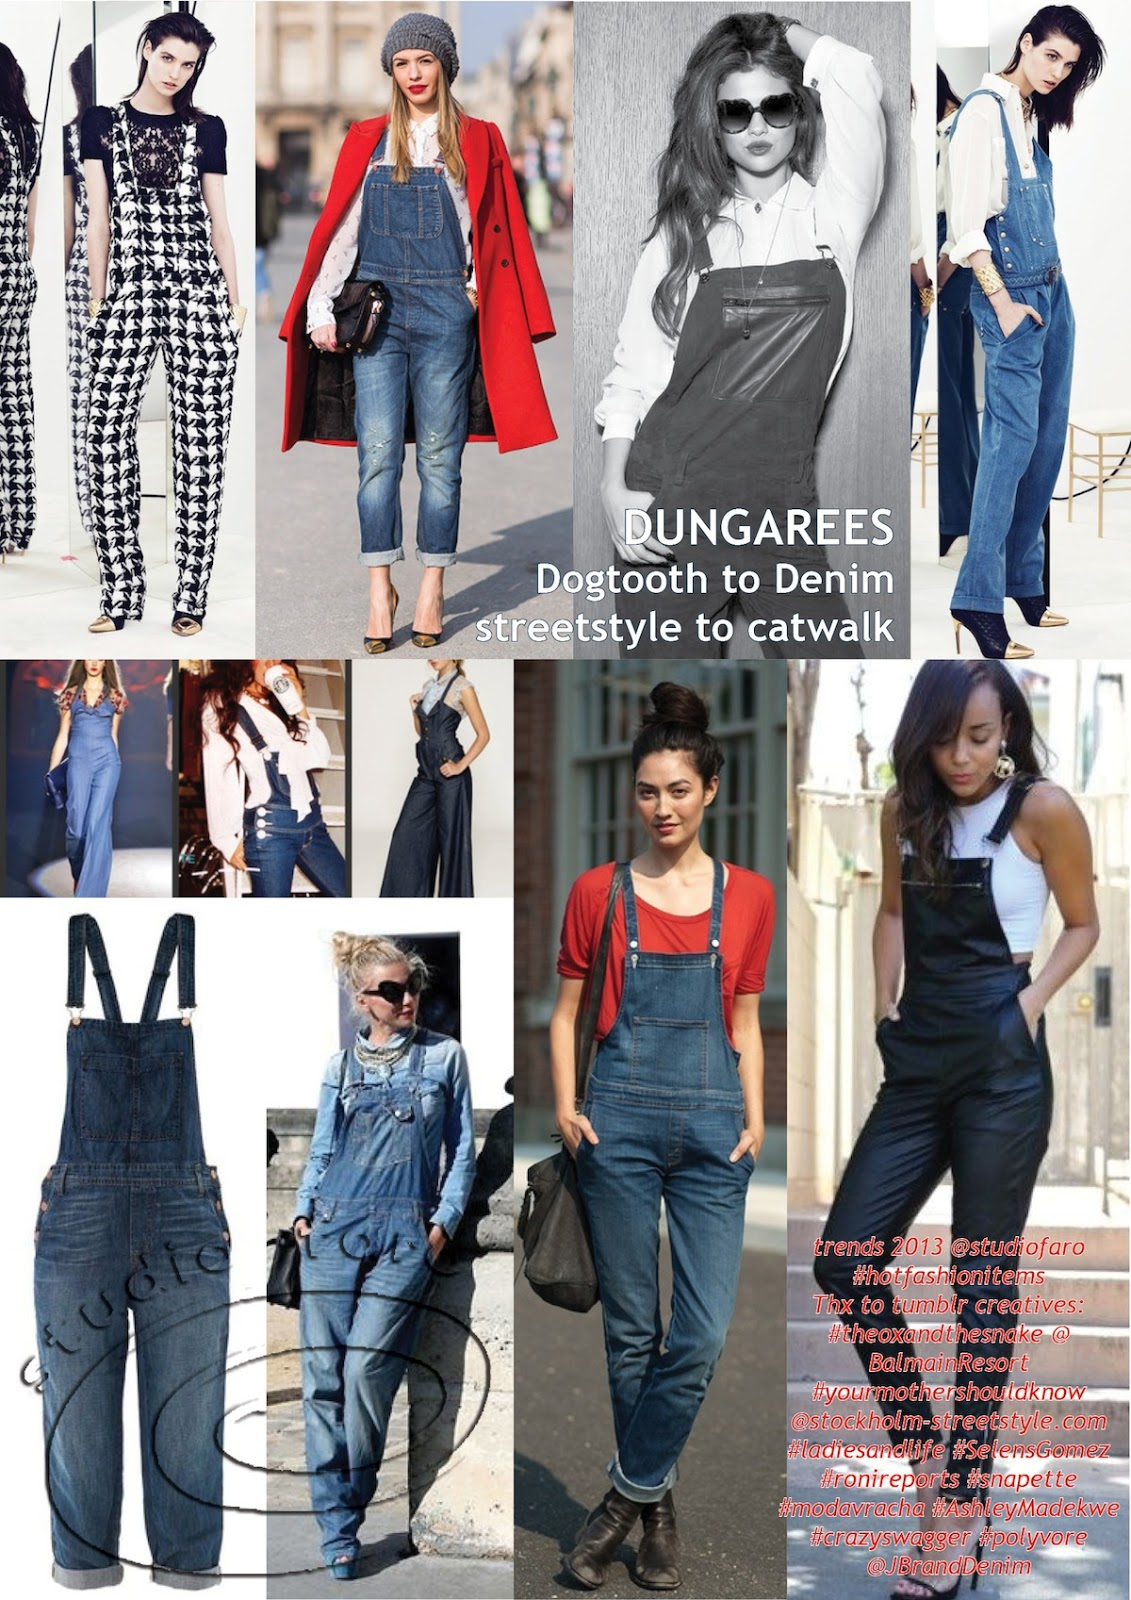 Well Suited Dungarees Dogtooth To Denim Streetstyle Catwalk With Hood 10 July 2013